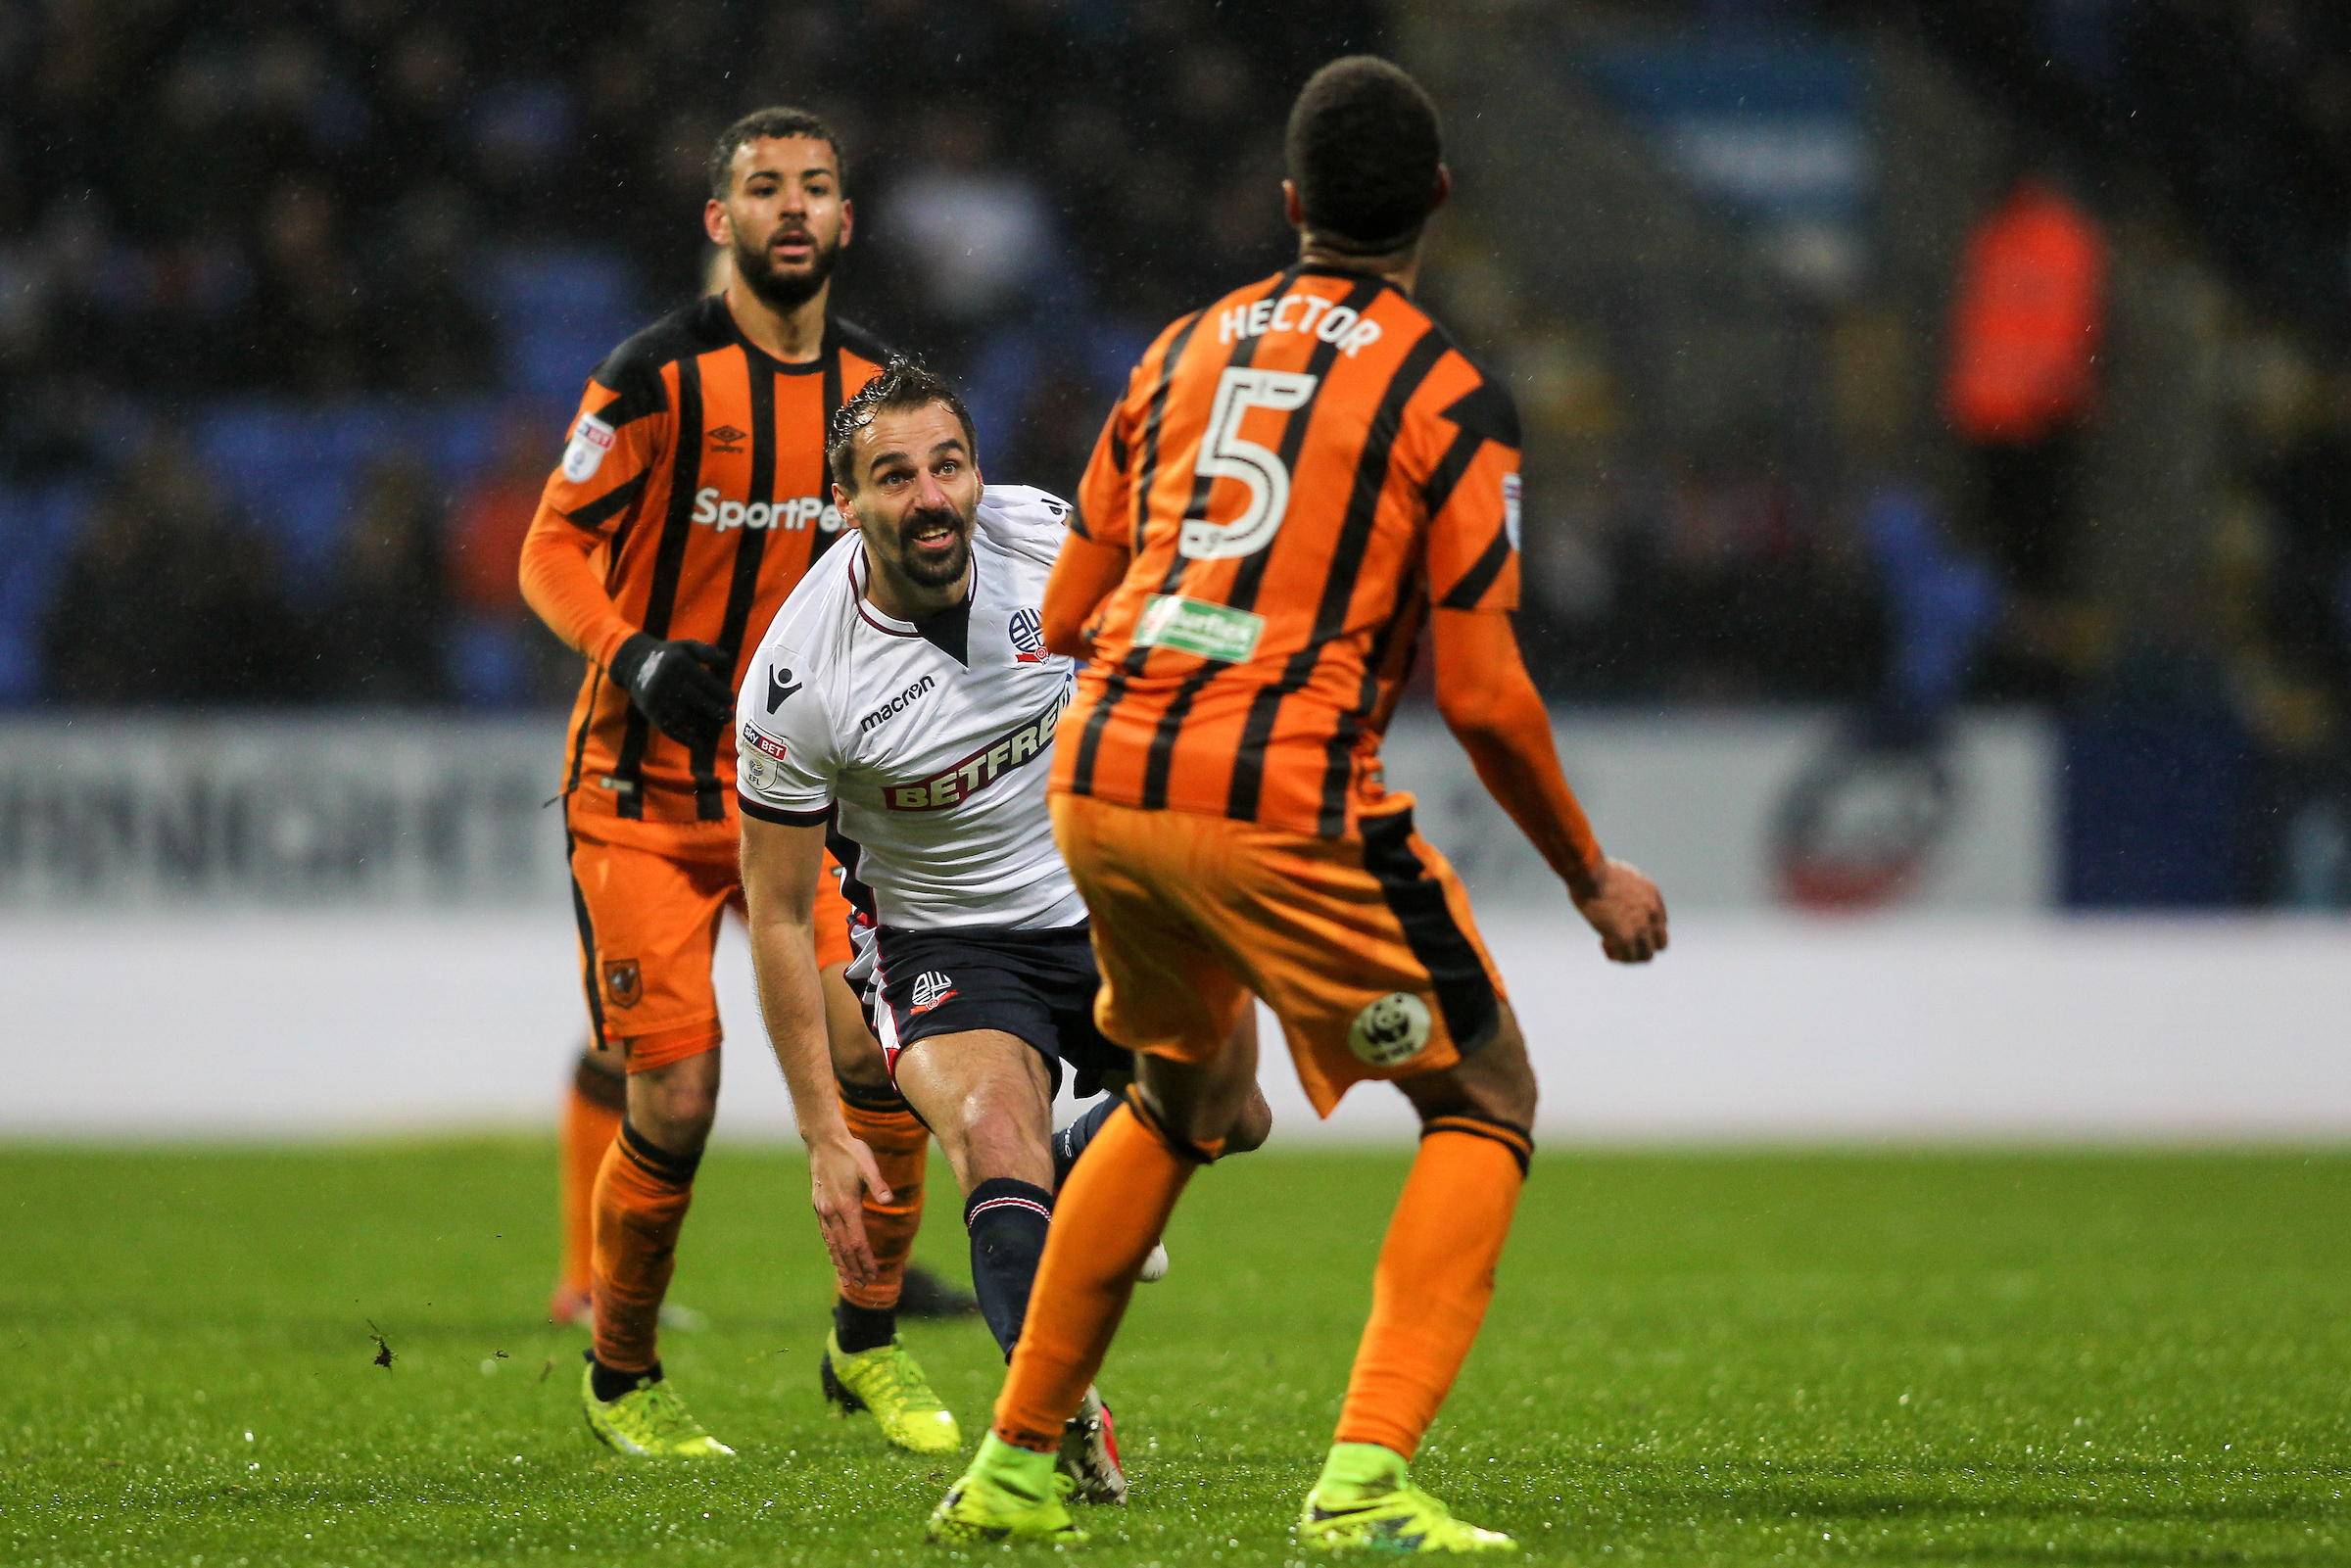 MAN IN THE MIDDLE: Filipe Morais played just behind main striker Gary Madine in the 1-0 victory over Hull City at the Macron Stadium